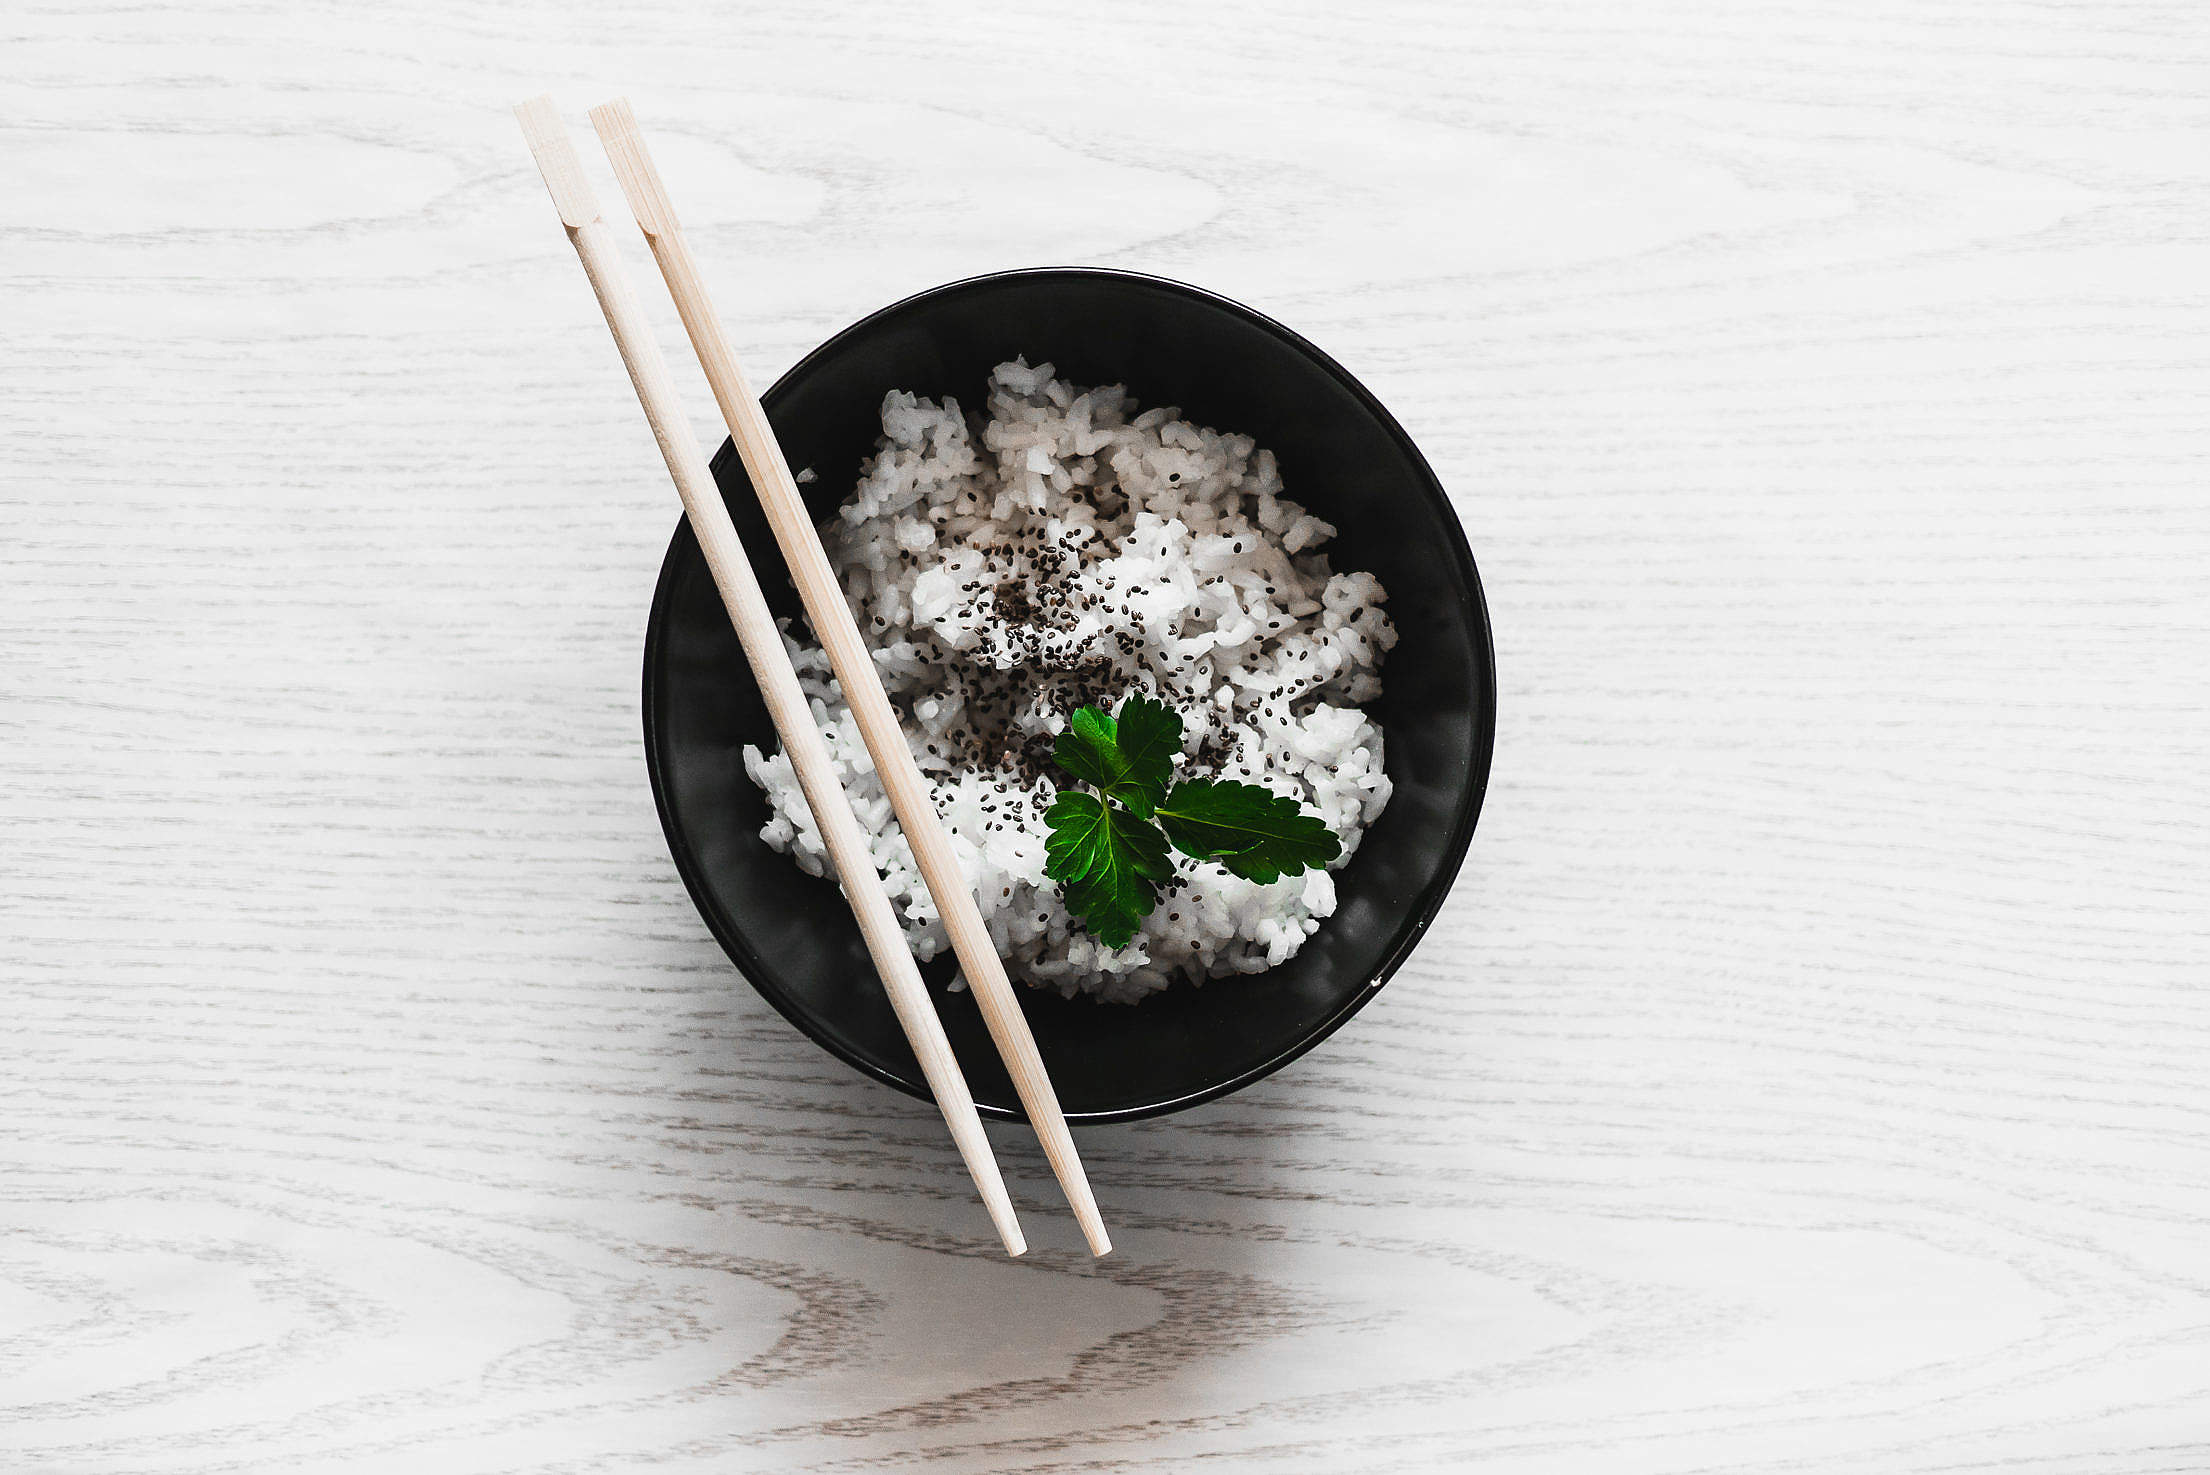 Eating Rice with Chopsticks Free Stock Photo